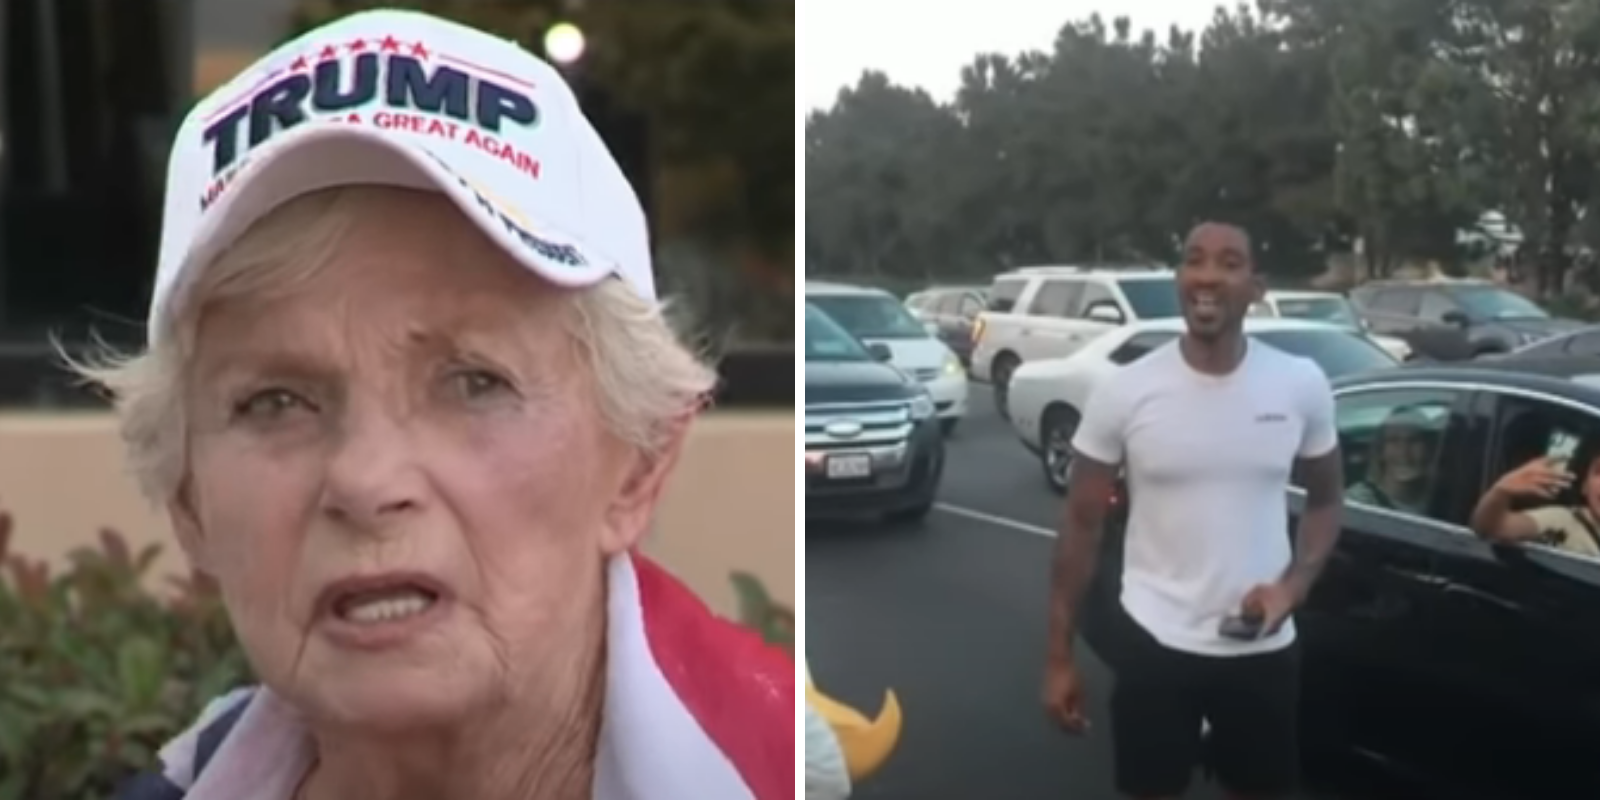 33-year-old man arrested after punching 84-year-old Trump-supporting woman in the face